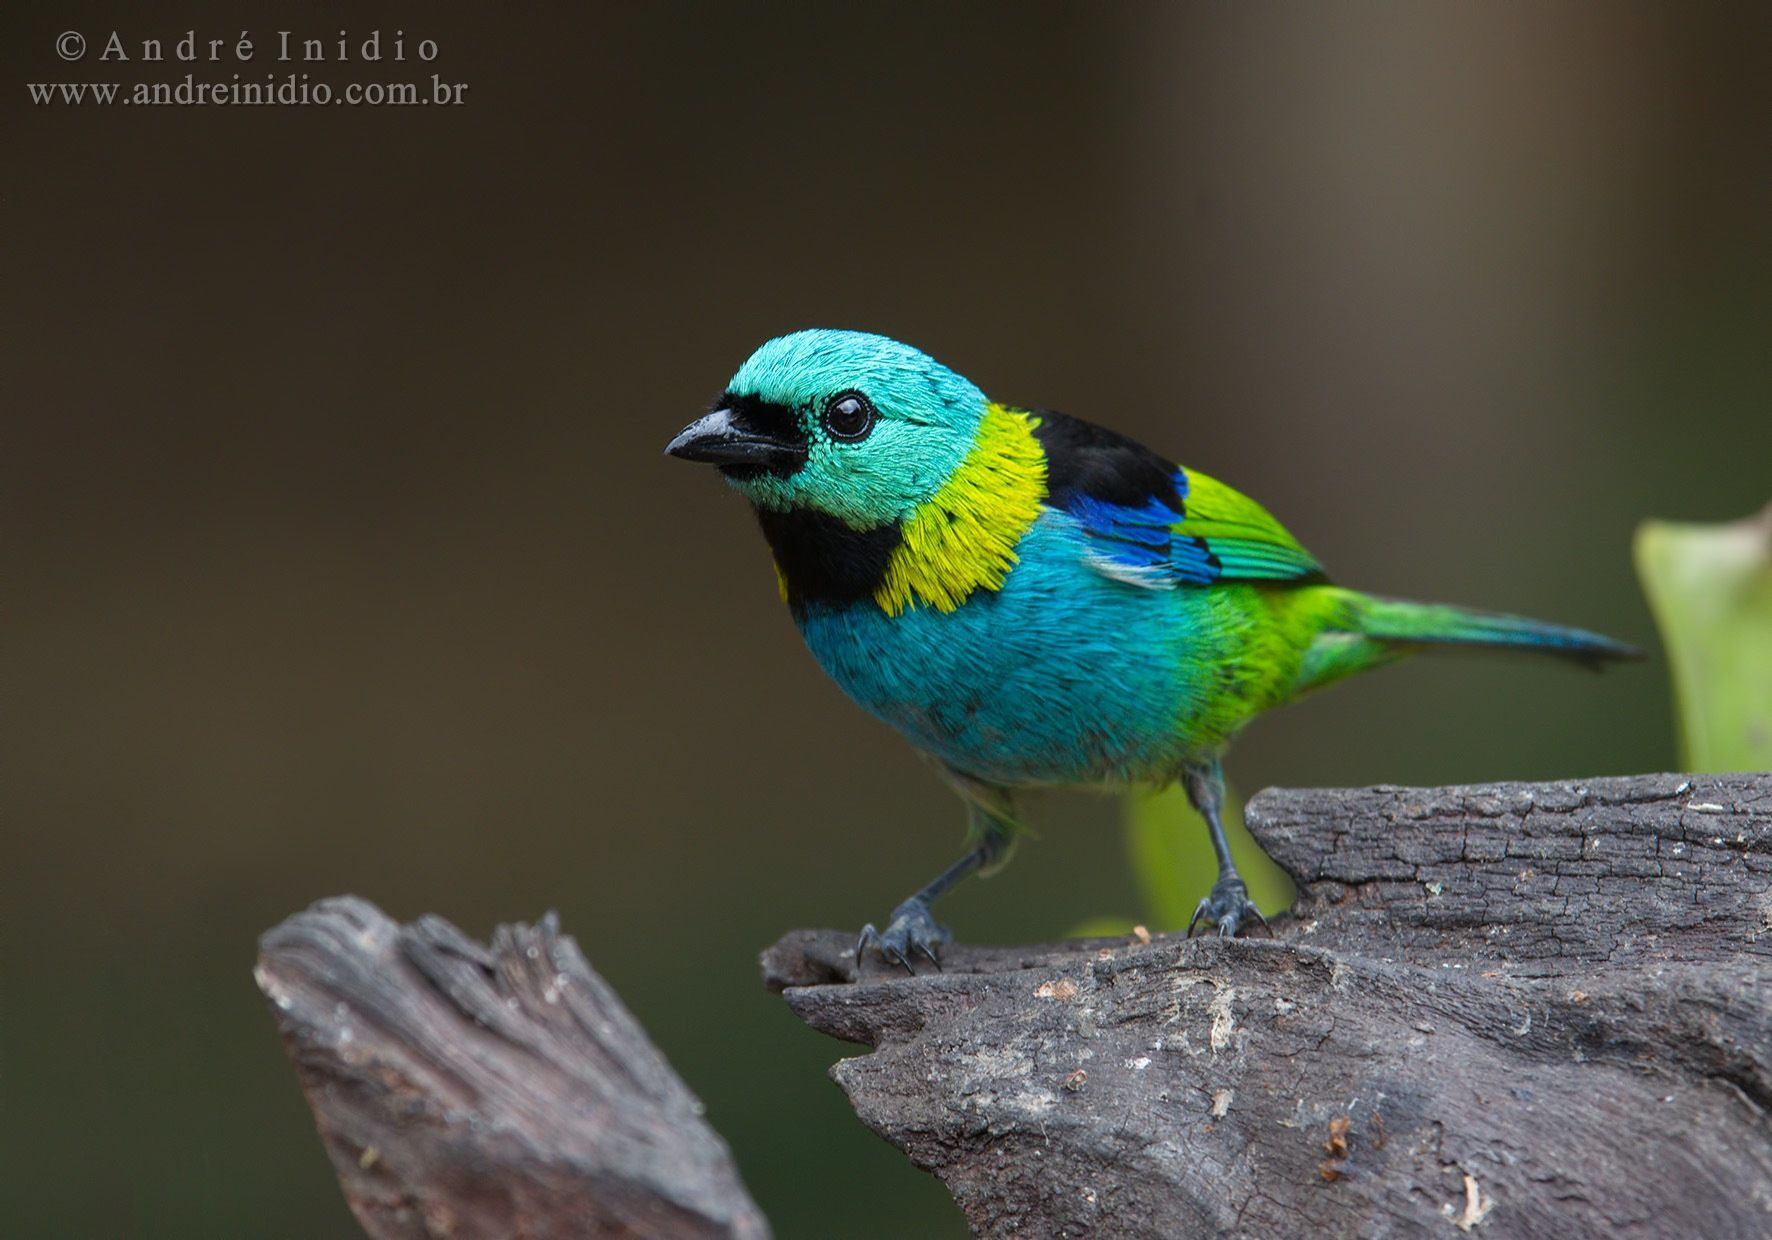 Green-headed Tanager by André Inidio on 500px